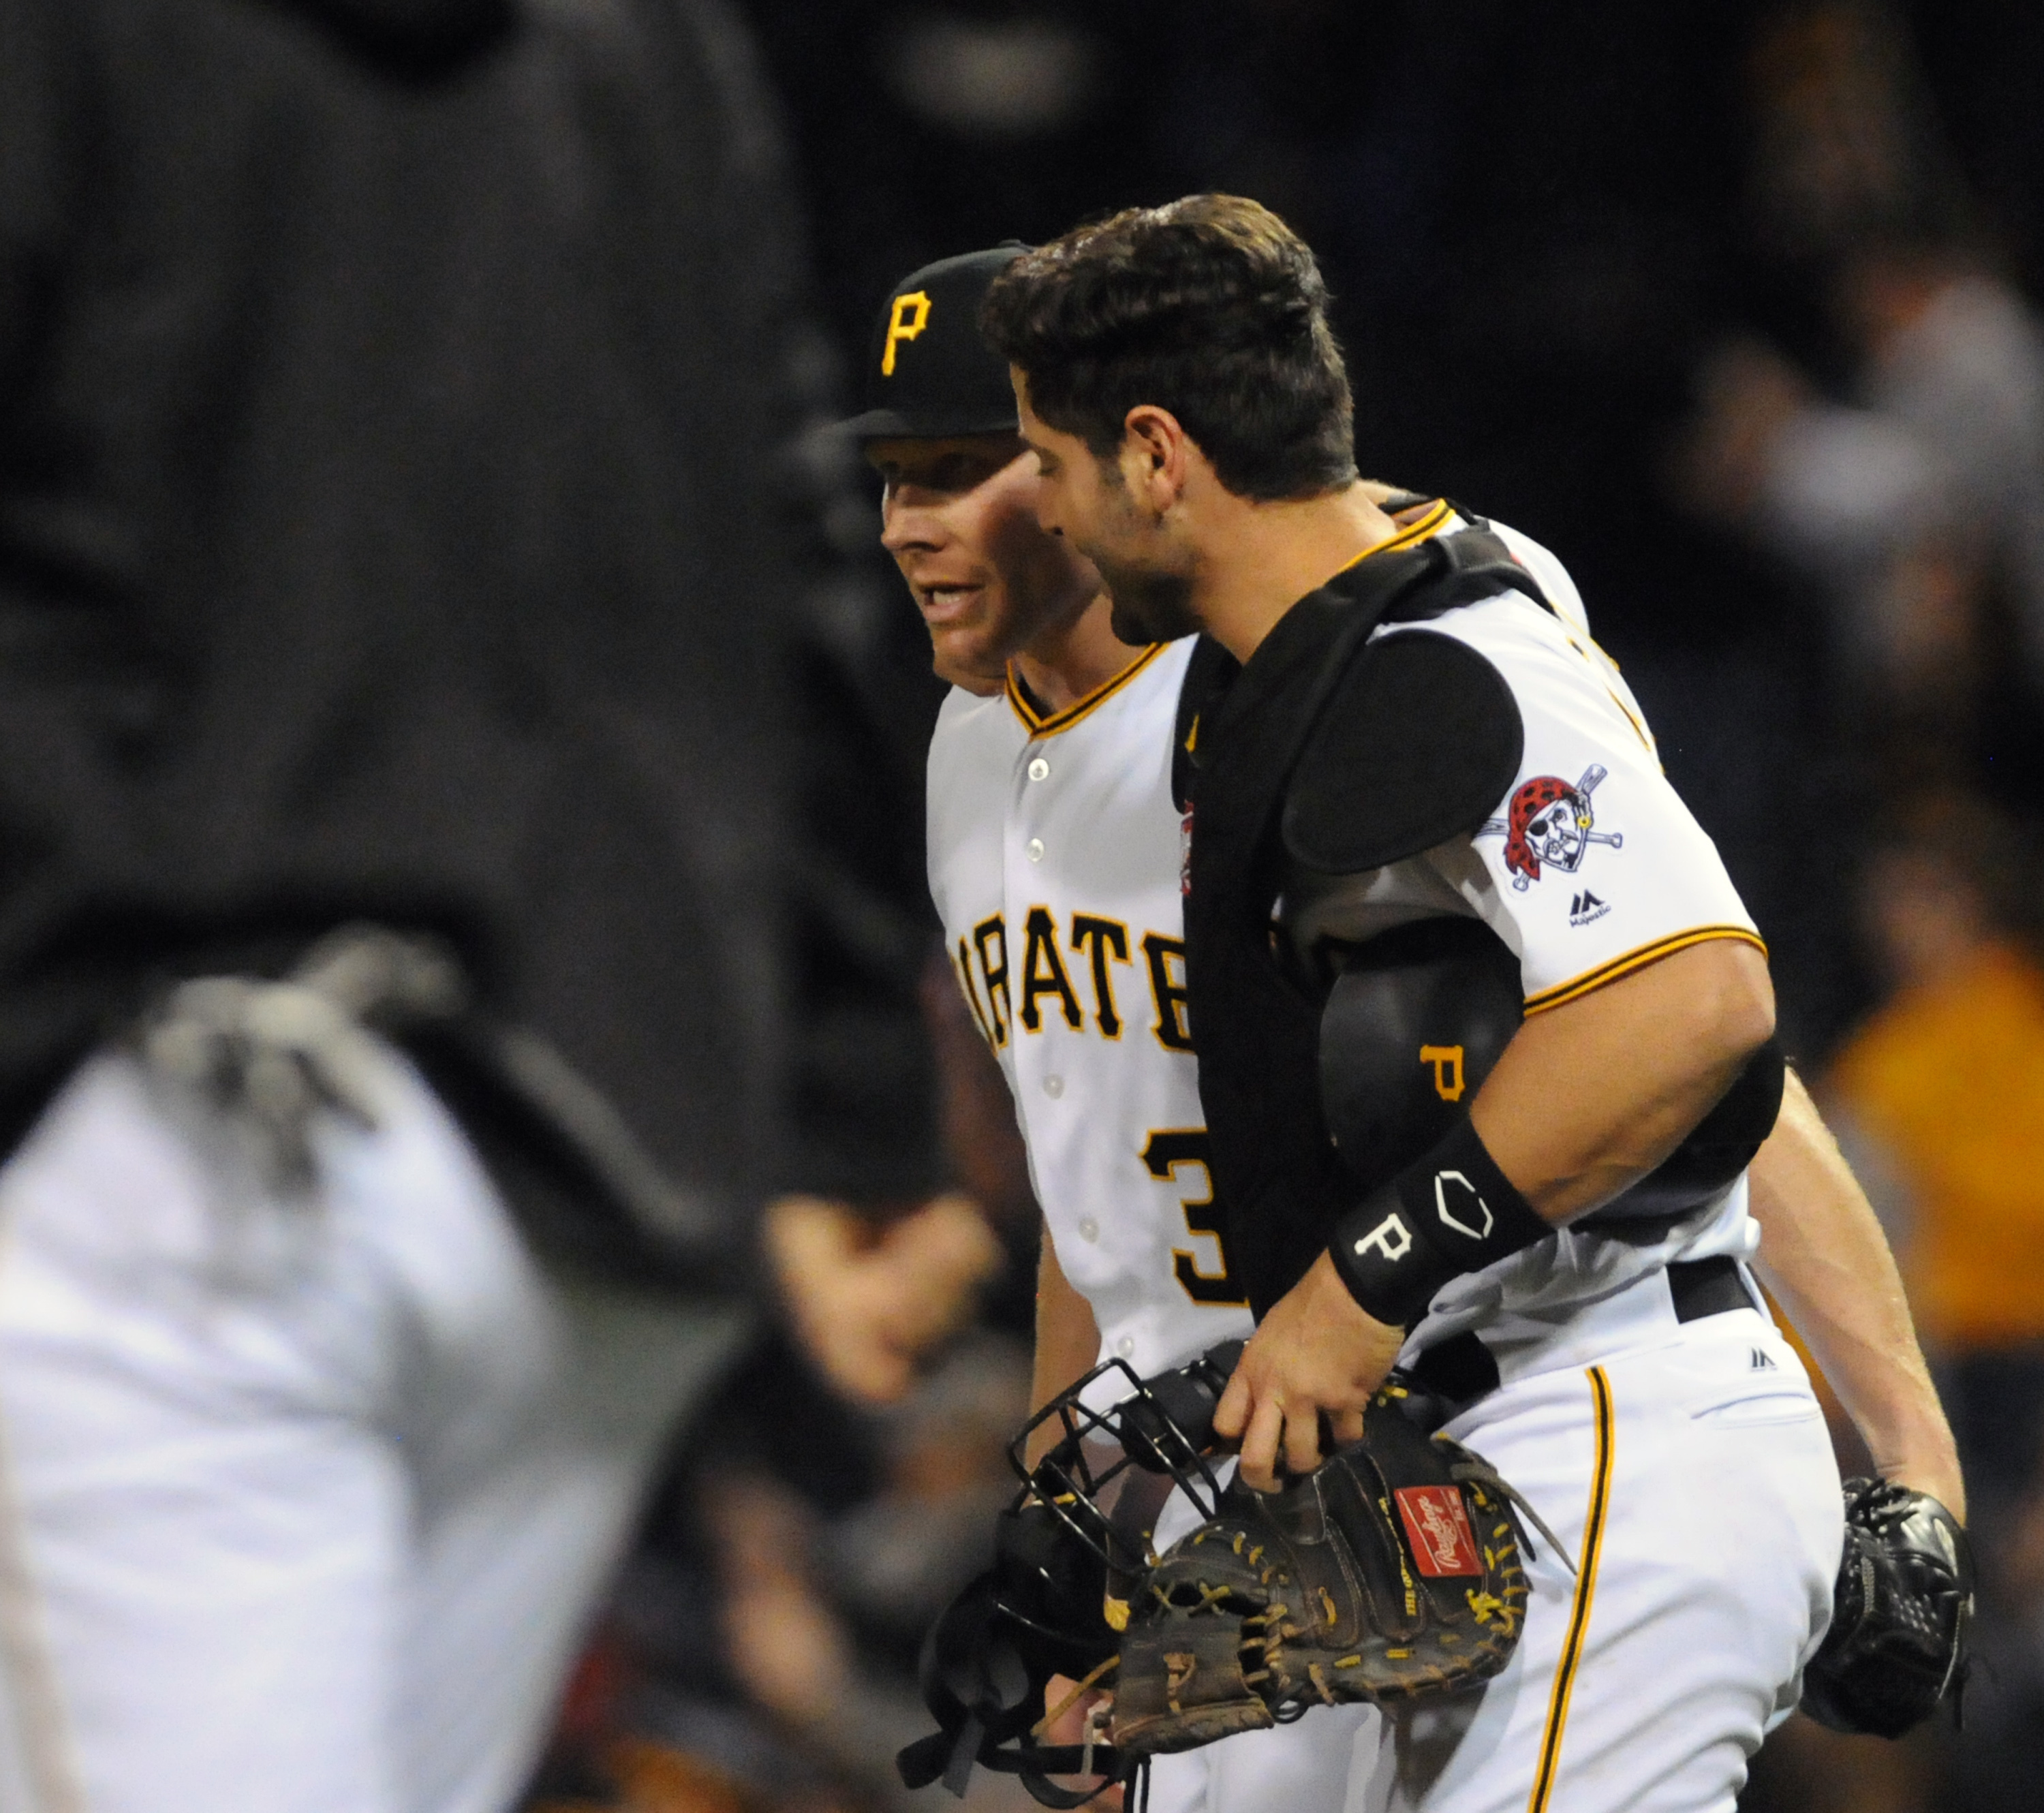 Pittsburgh Pirates' pitcher, Mark Melancon, left, with catcher, Francisco Cervelli, right, after Melancon got his 12th save of the season as the Pittsburgh Pirates win over the Atlanta Braves 8-5 in a baseball game, Monday, May 16, 2016 in Pittsburgh. (AP